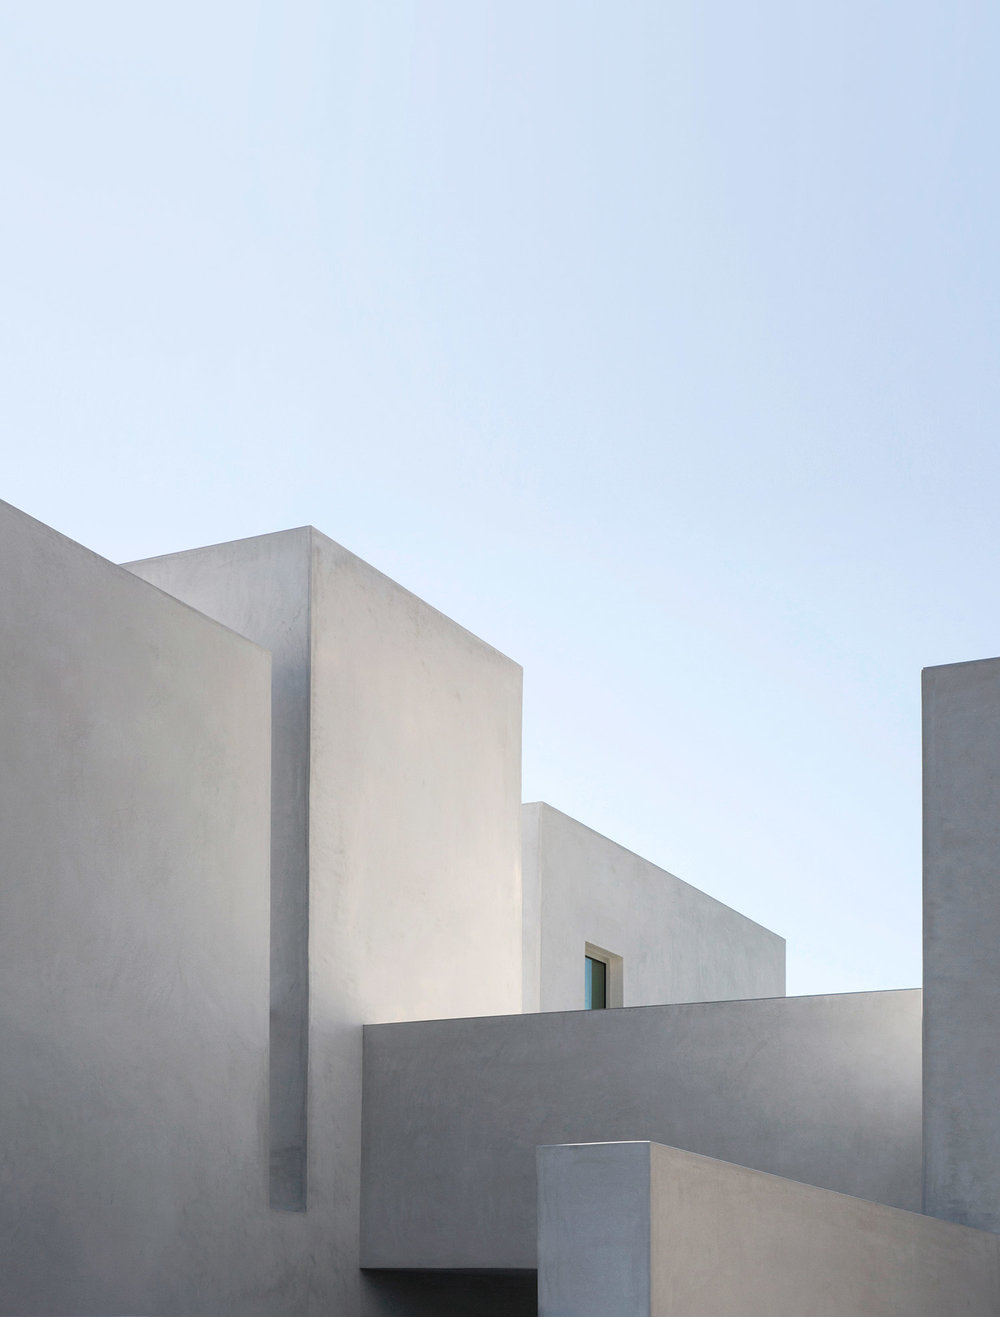 Geometric-Encounters-architecture-concrete-exterior-photography-cool-clean-modern-by-Thismintymoment-Mindsparkle-Mag-9.jpg